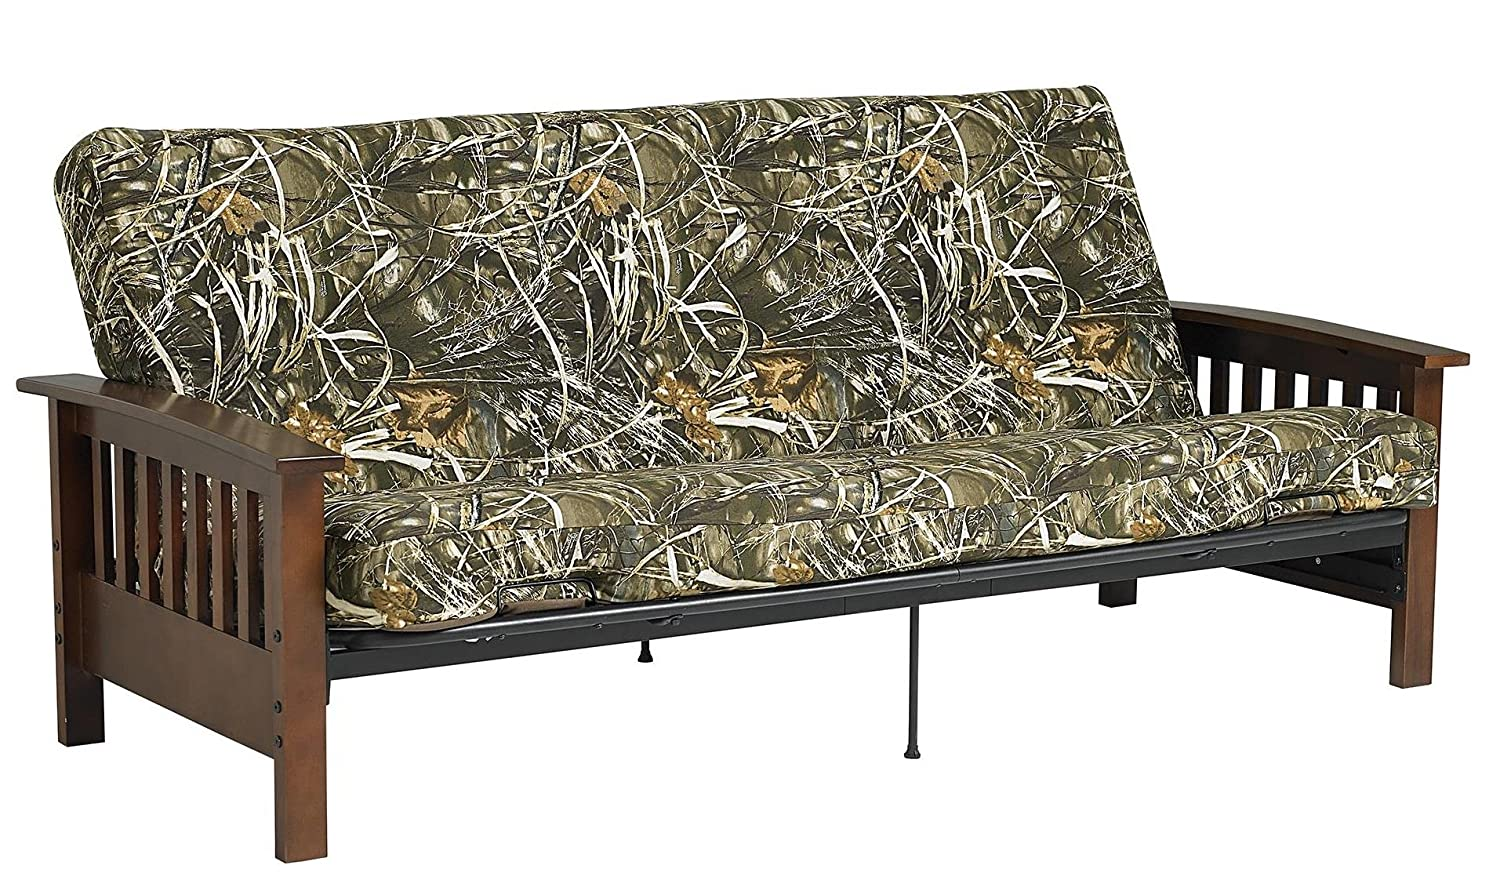 DHP 3829096 6 Realtree MAX-5 Poly Filled Full Size Futon Mattress, Camouflage Dorel